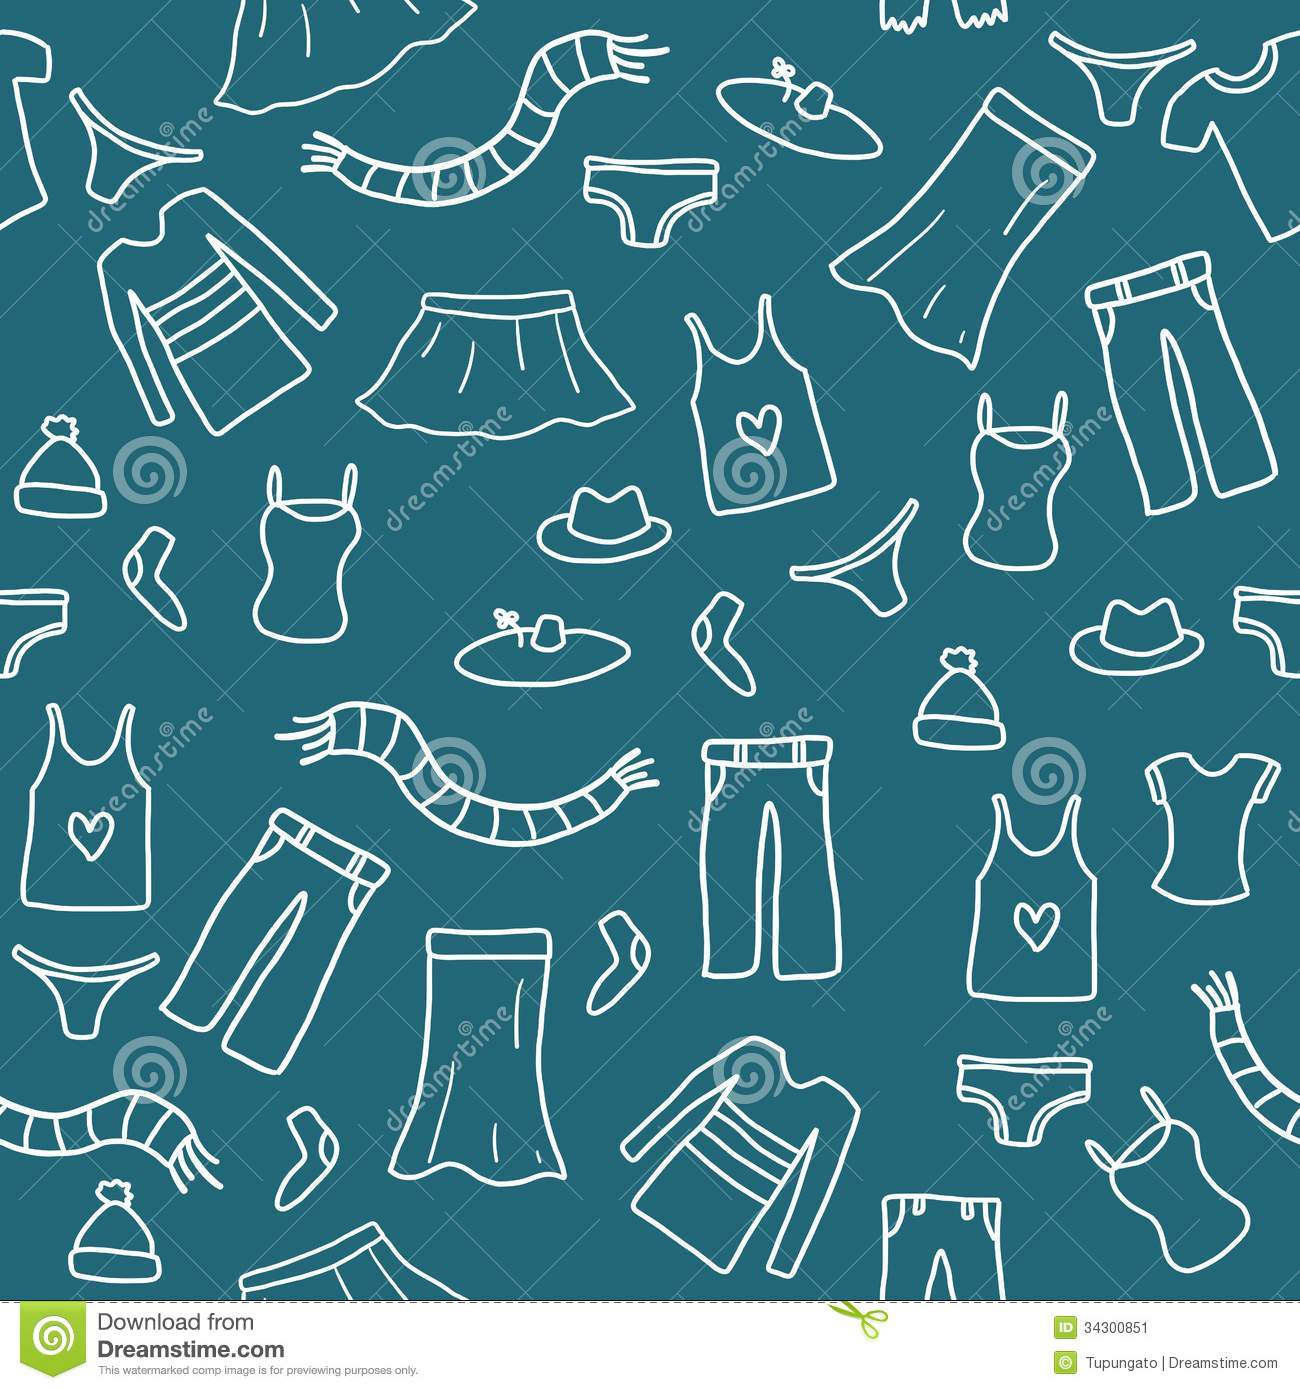 Seamless clothes doodle stock vector. Image of clothing